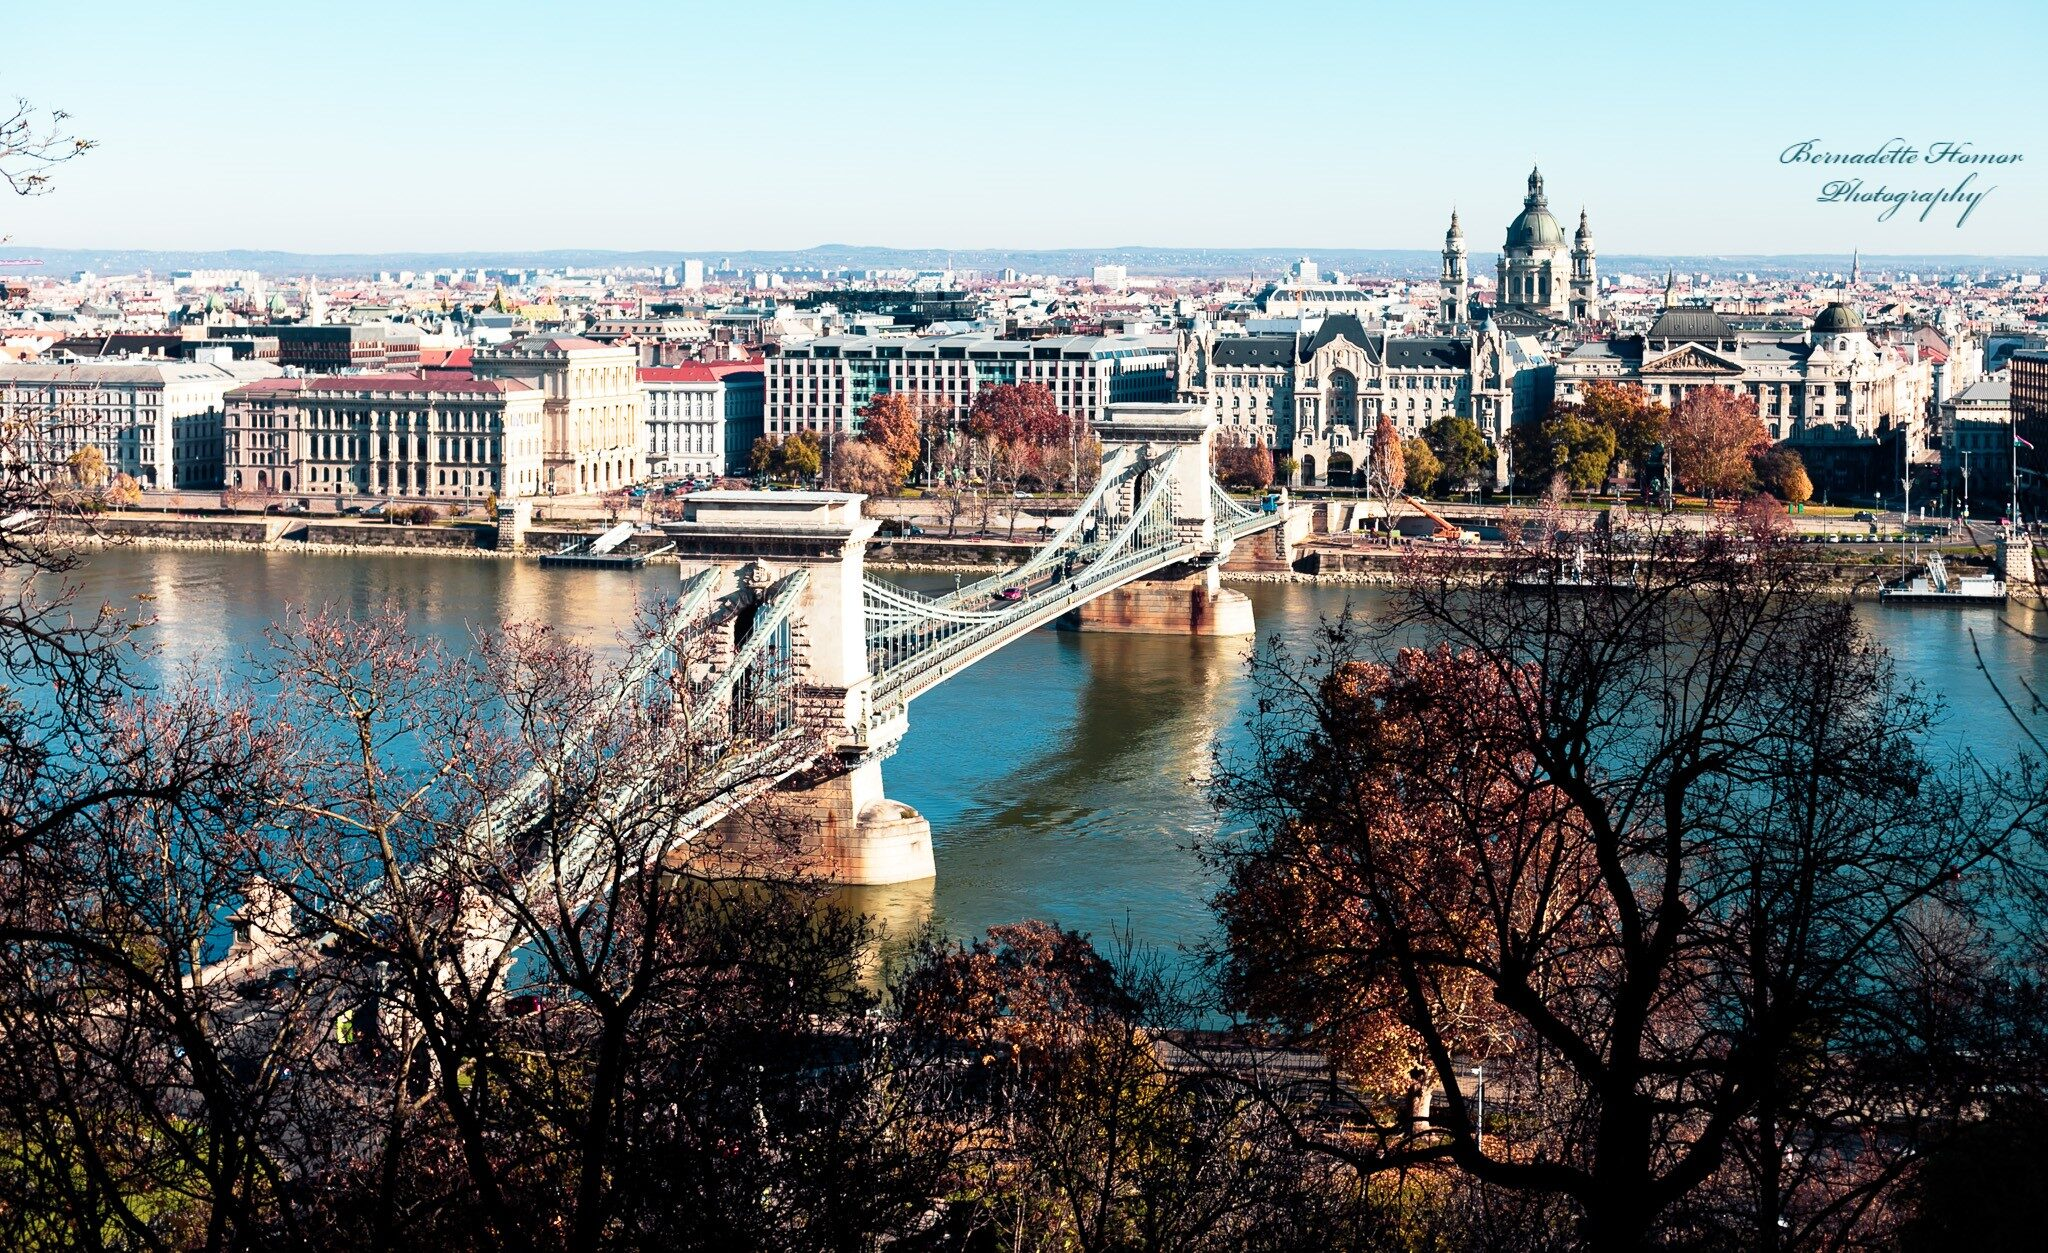 Panoramic view of Chain Bridge